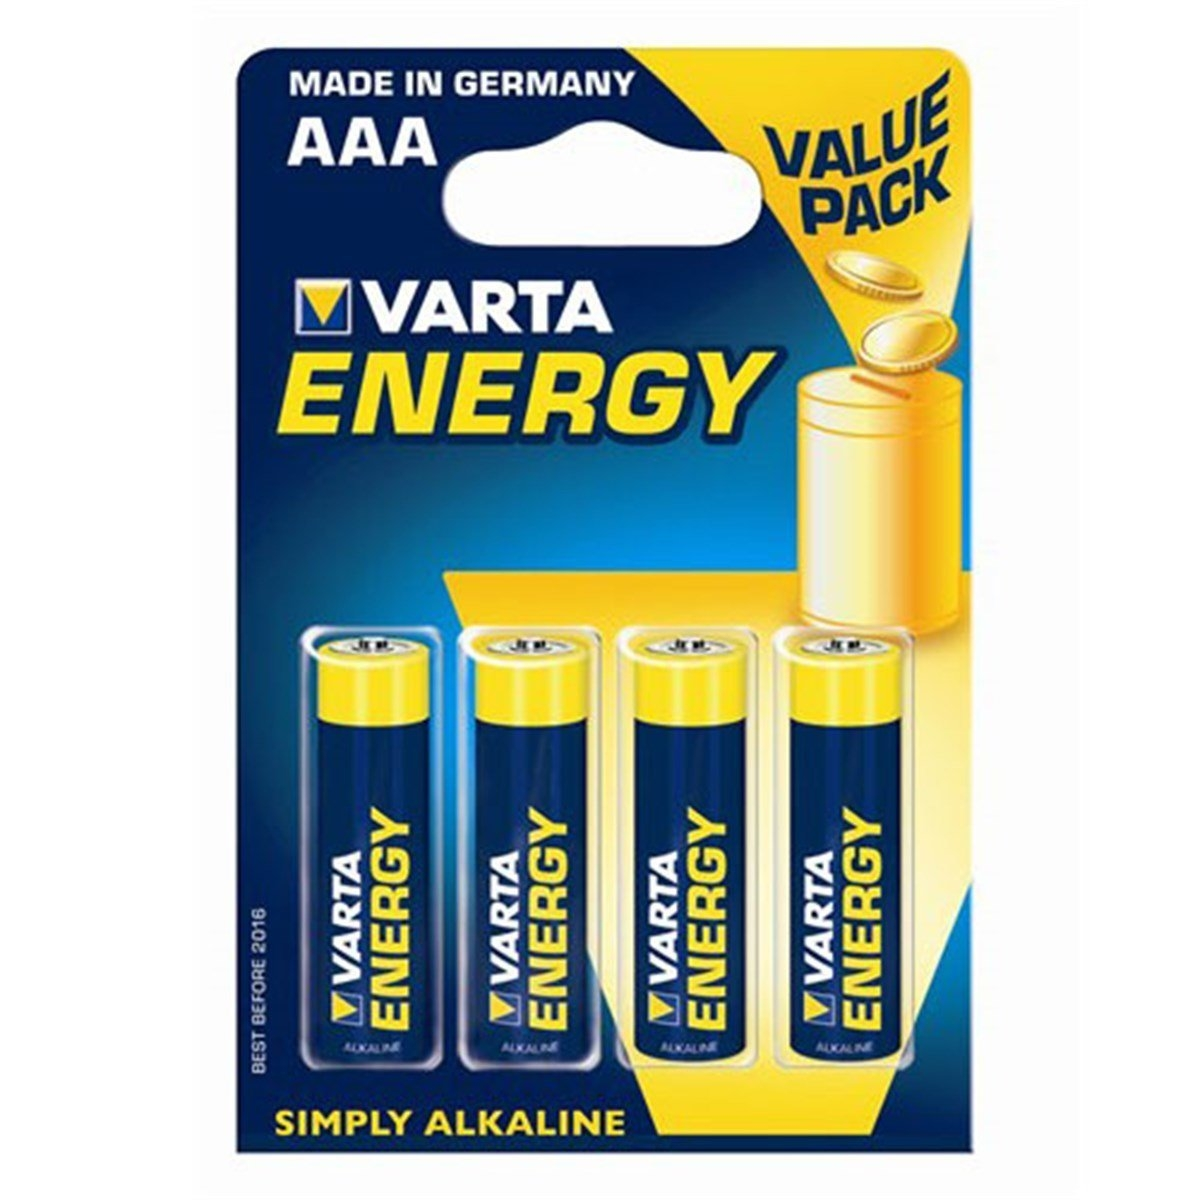 Varta Energy, Retail Blister (4-Pack)